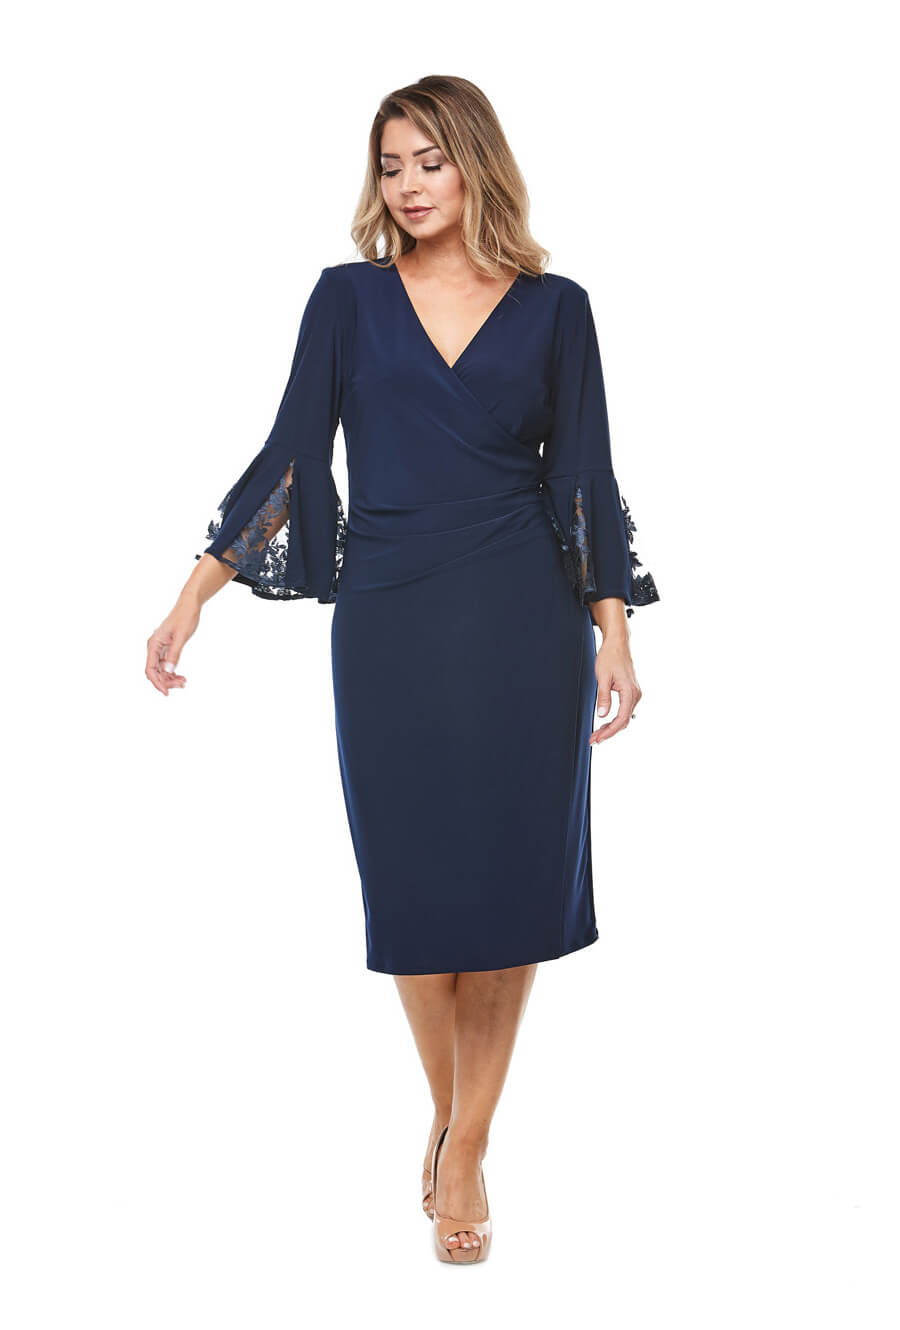 Stretch jersey wrap dress with bell sleeves & lace inserts